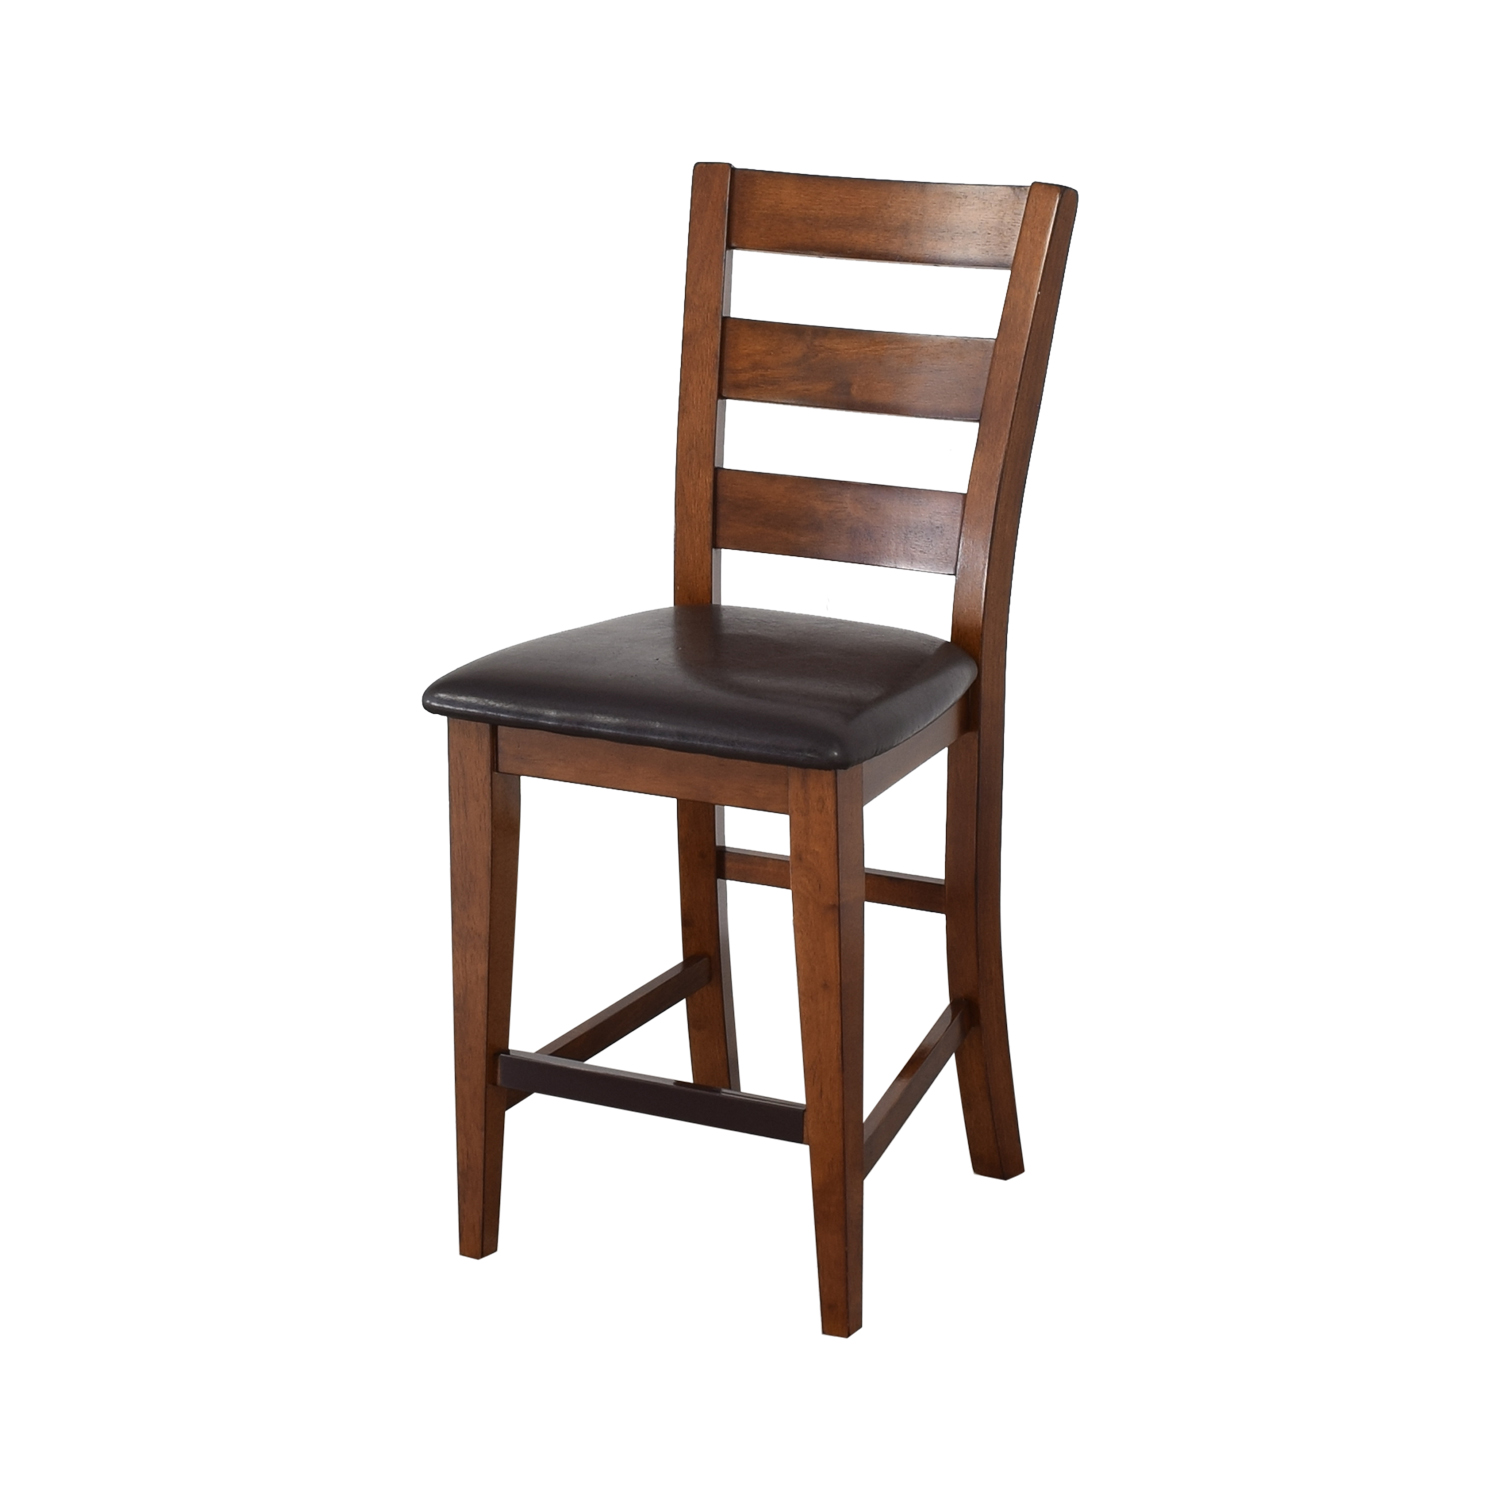 buy American Signature Ladder Back Dining Chairs American Signature